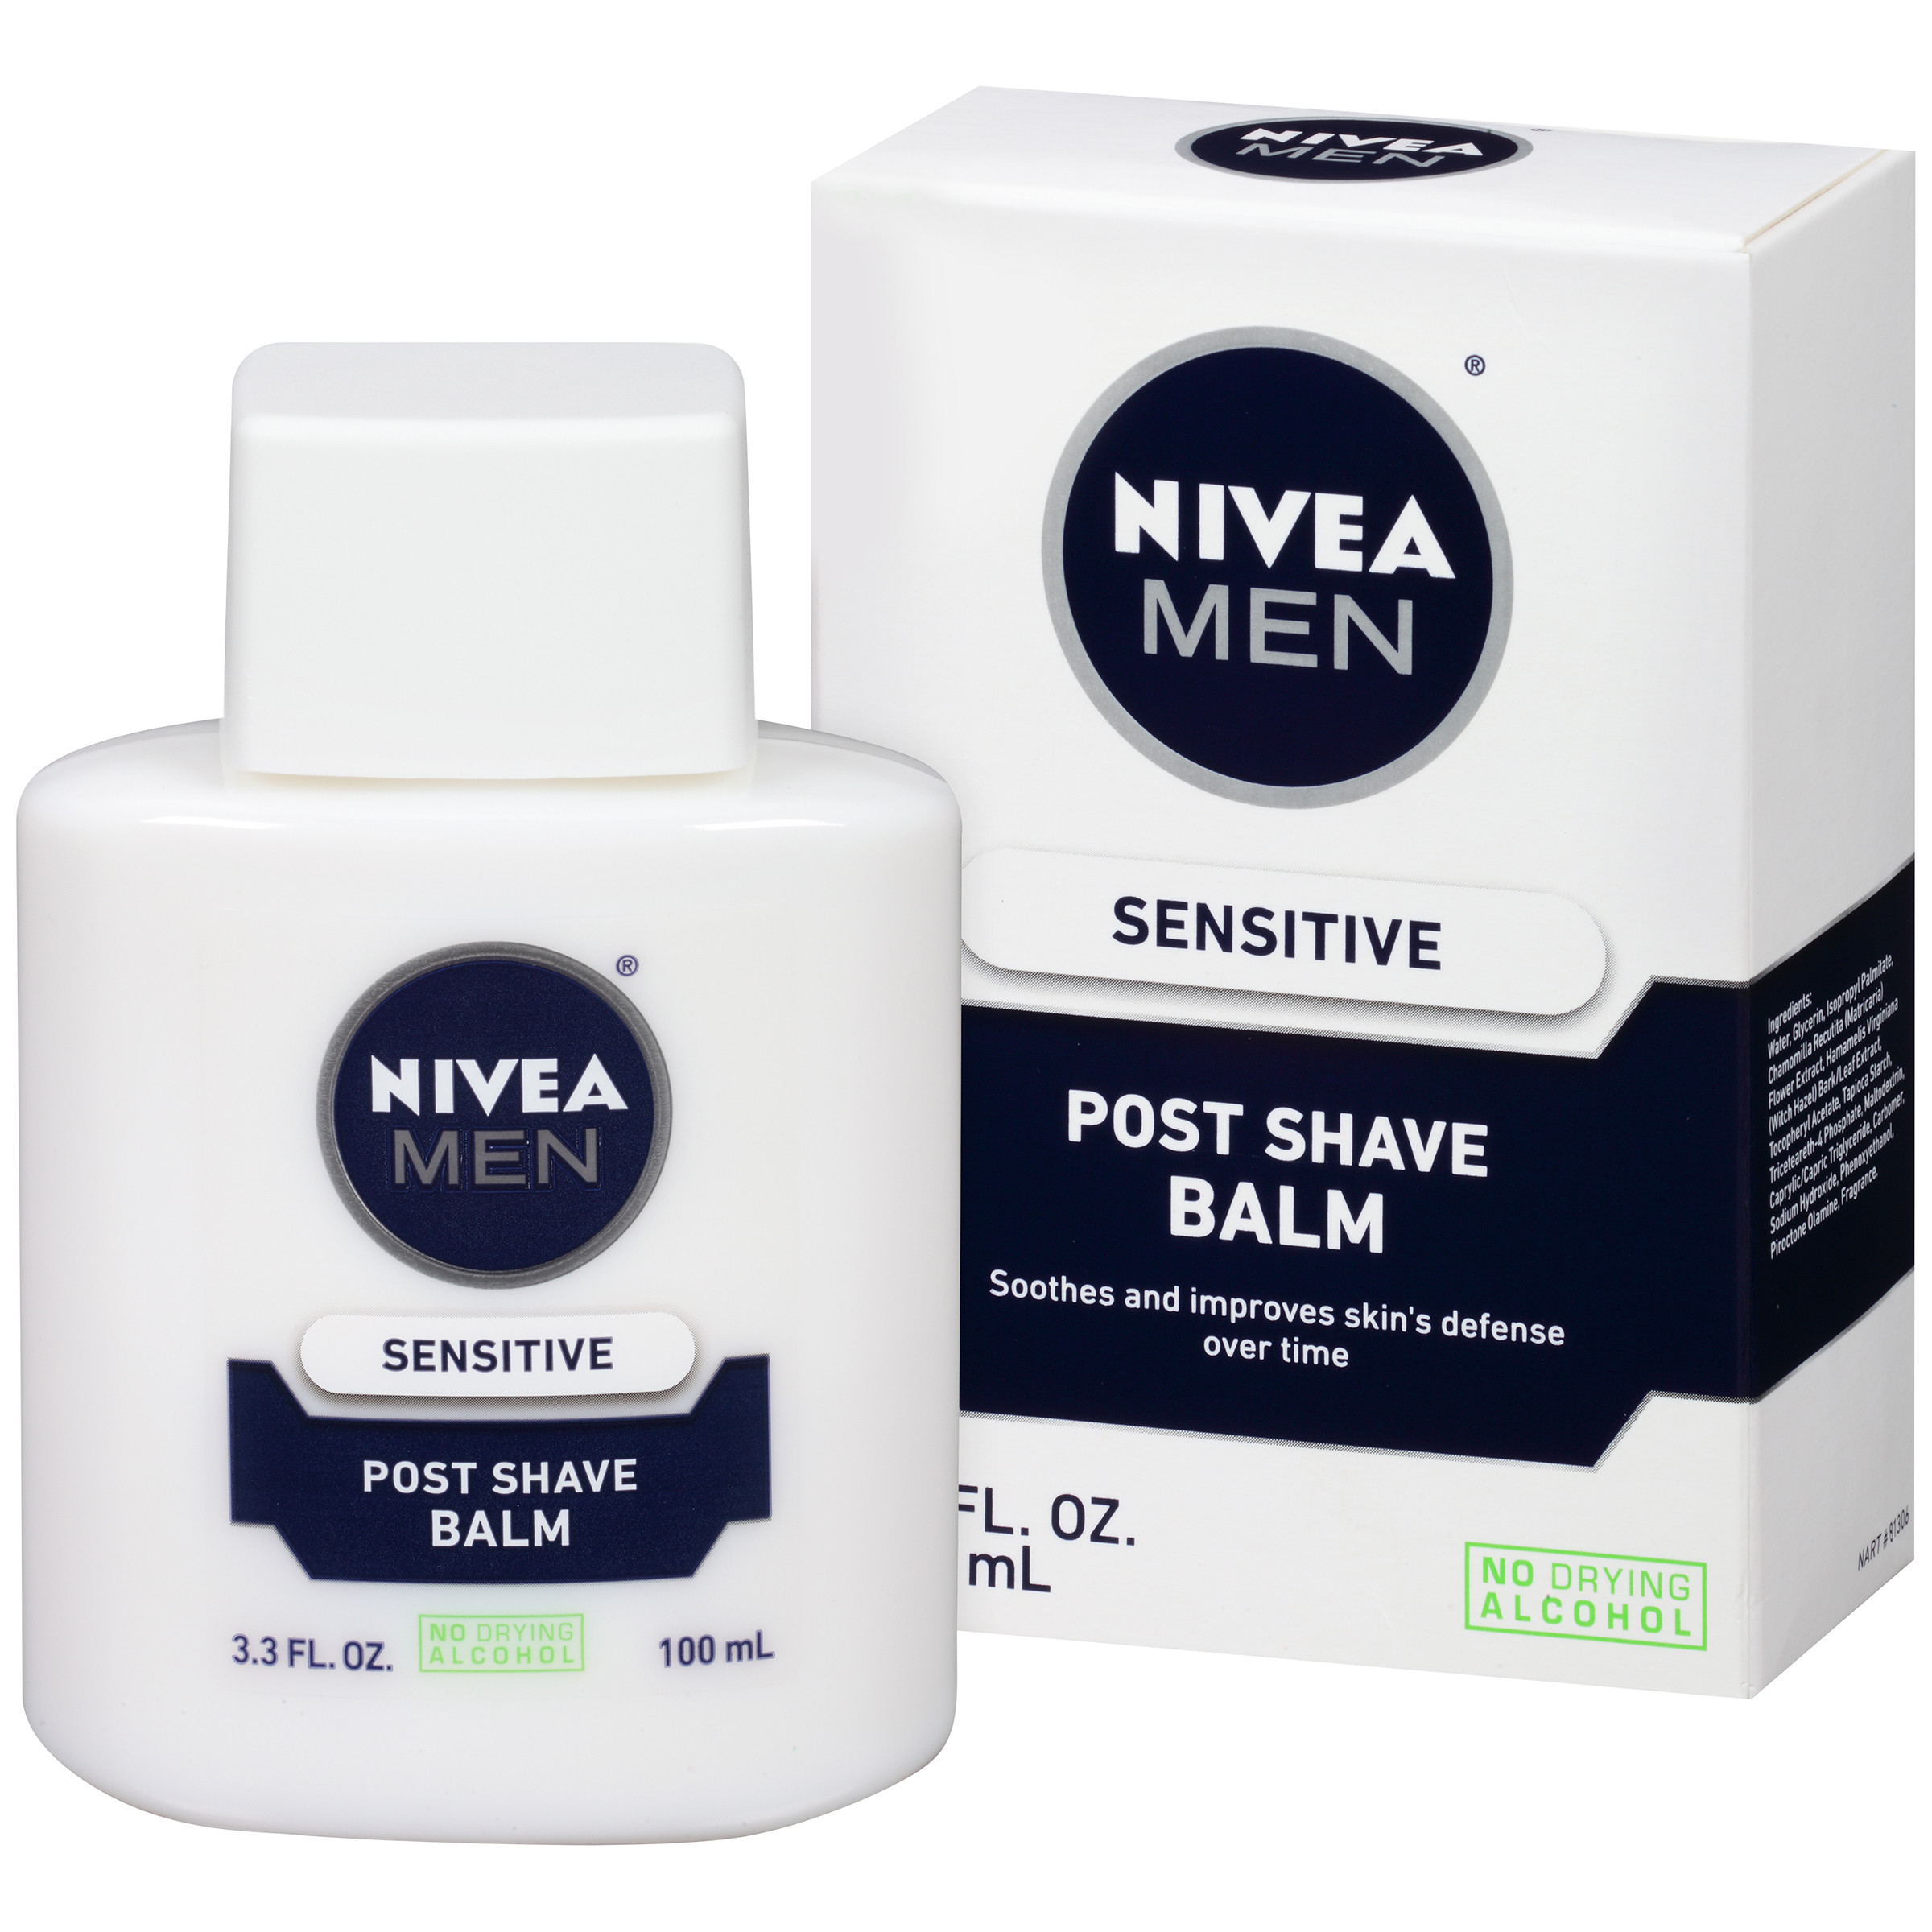 Nivea Men Sensitive Skin After Shave Balm, 3.3 oz - Walmart.com